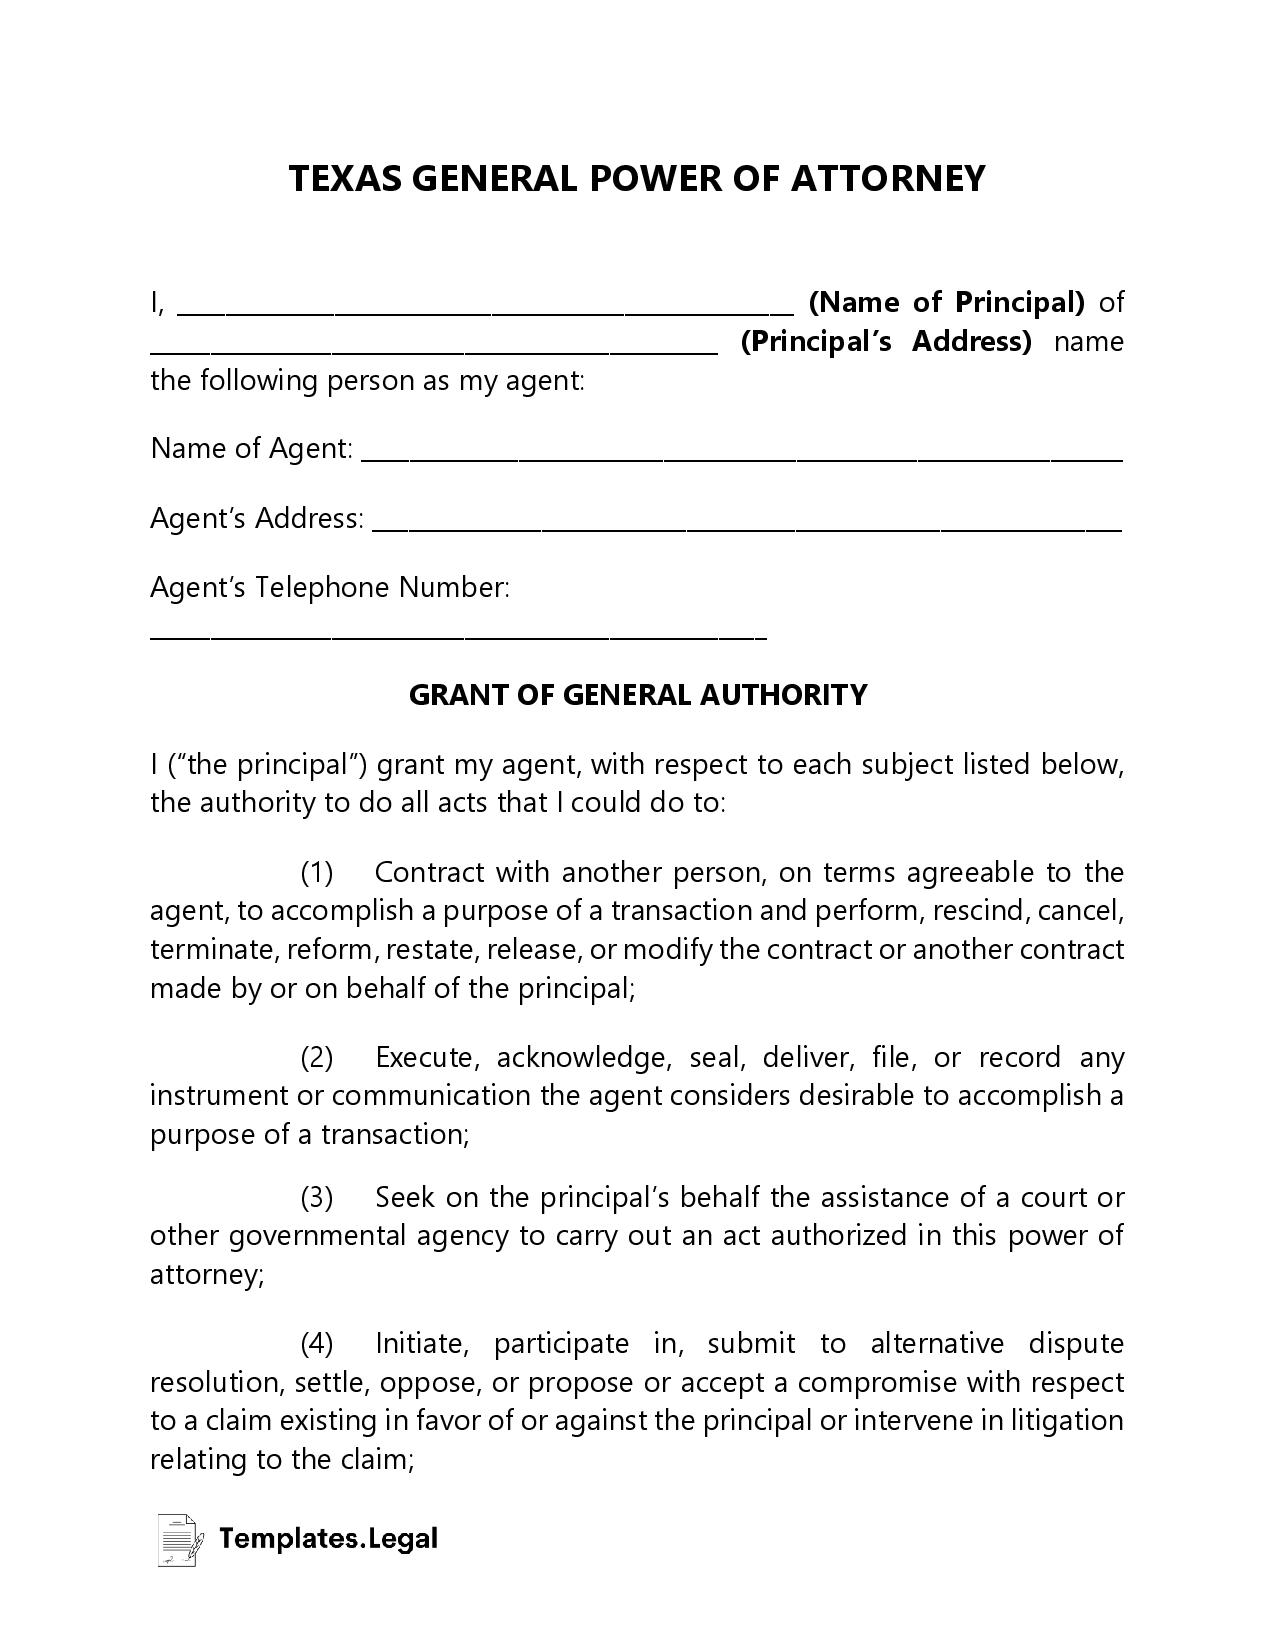 Texas General Power of Attorney - Templates.Legal